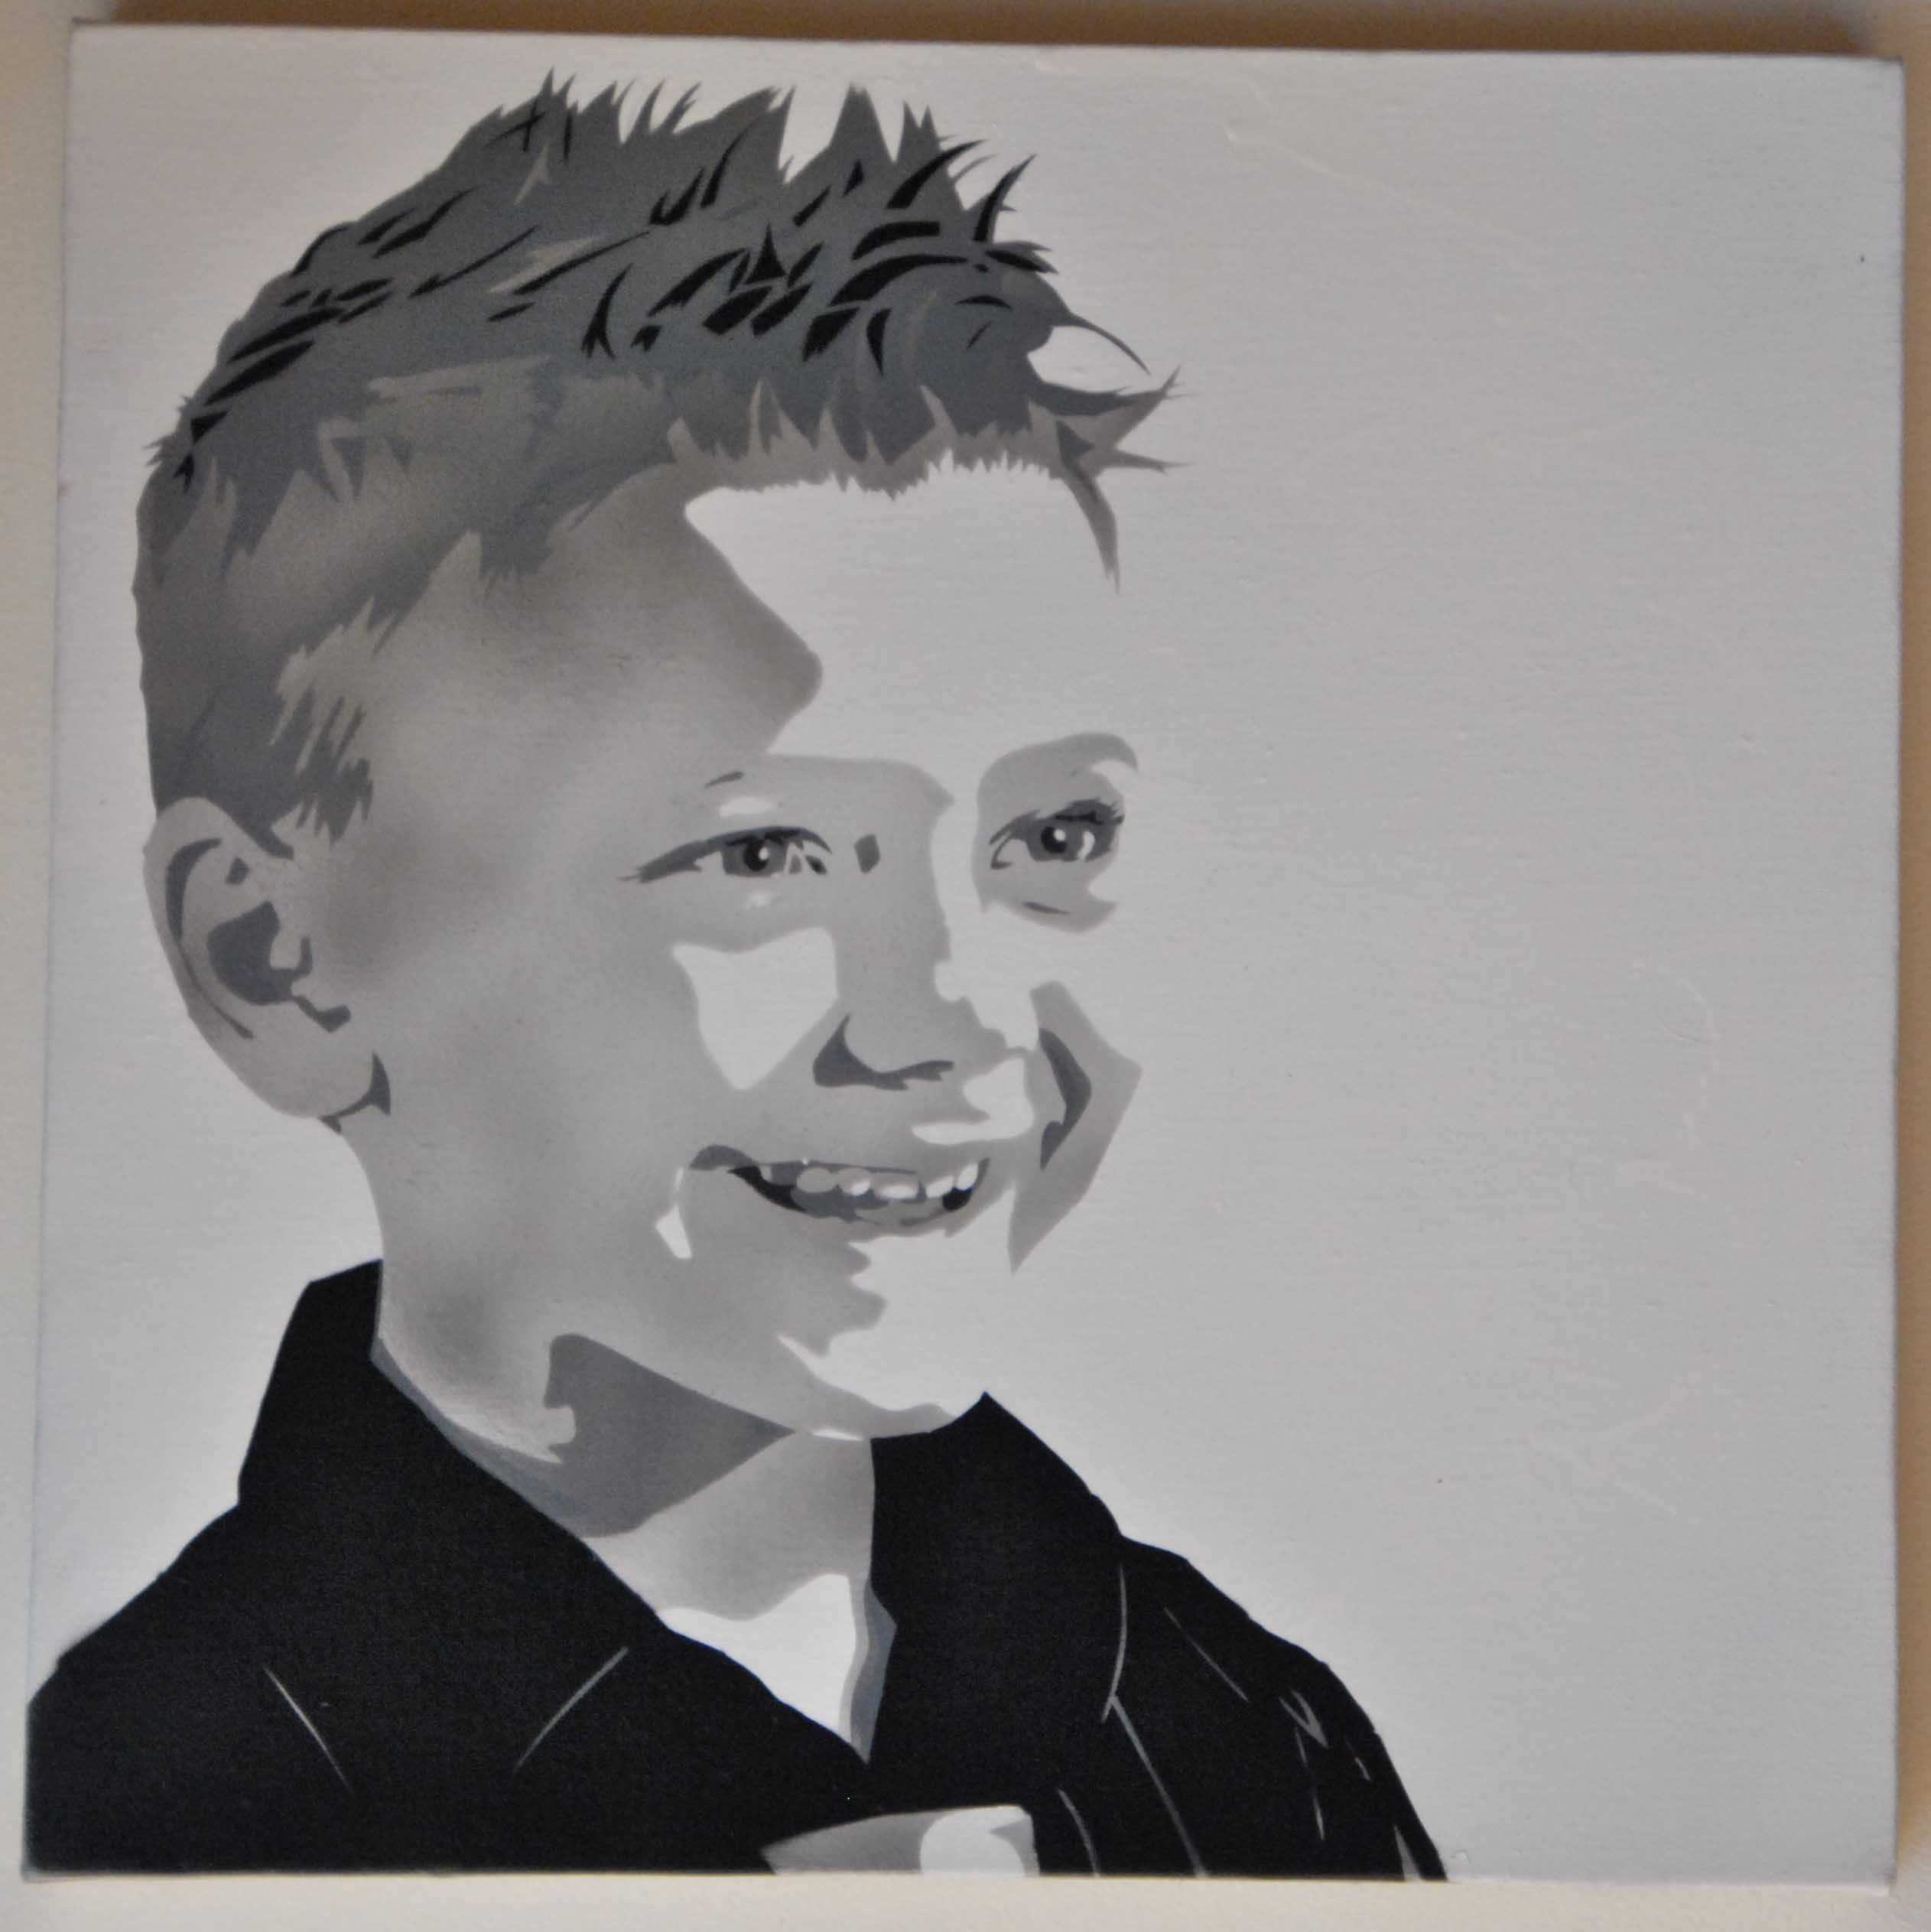 Multi Layered Design Prices Start At 280 For A 45 X 45cm